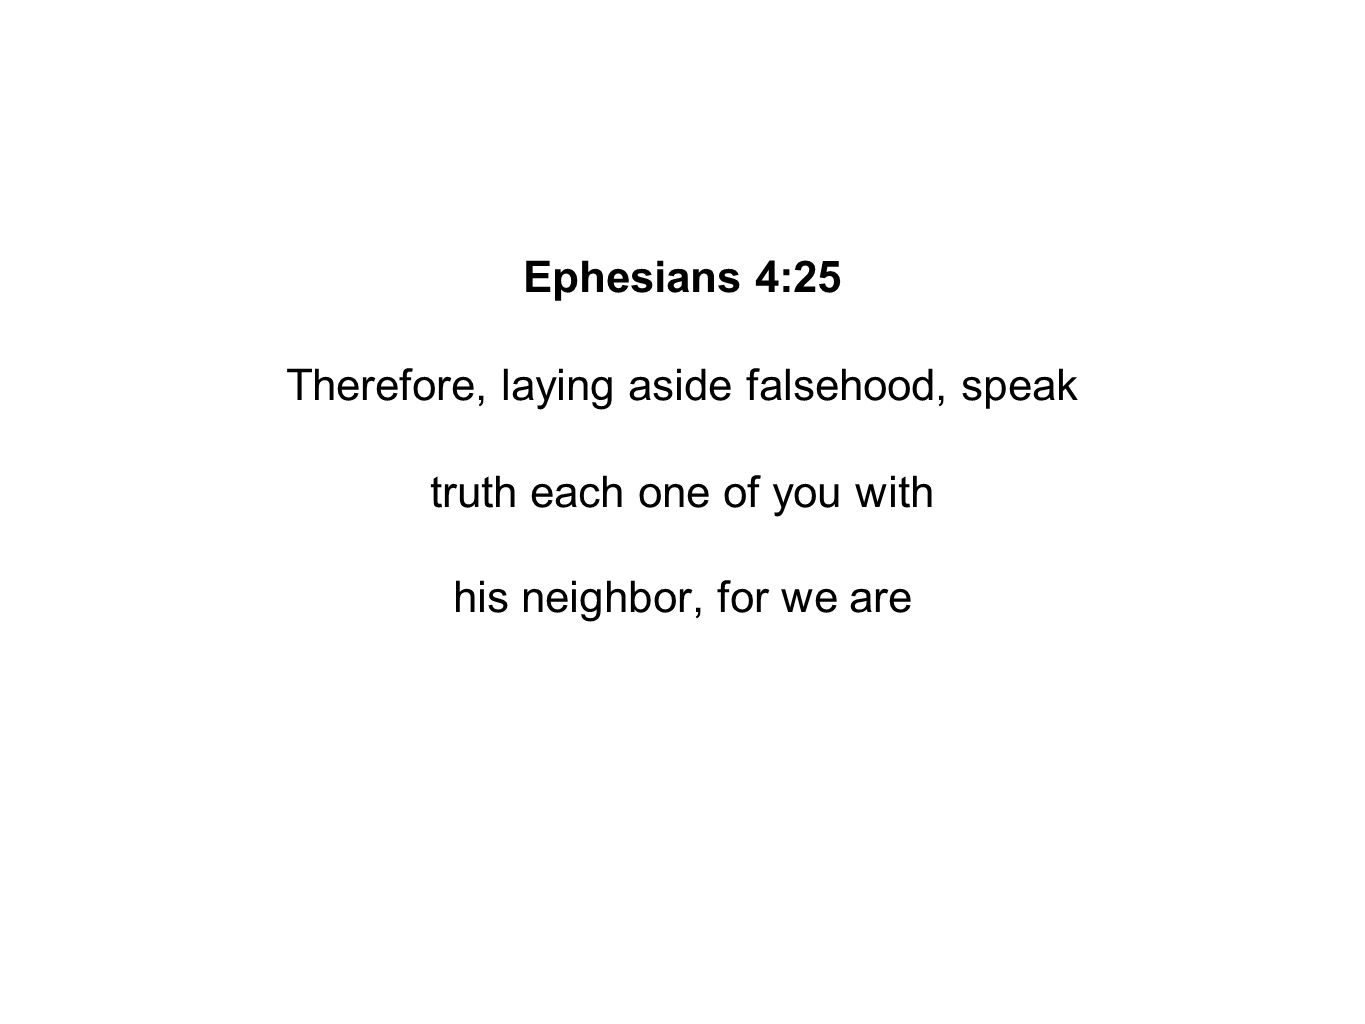 Ephesians 4:25 Therefore, laying aside falsehood, speak truth each one of you with his neighbor, for we are